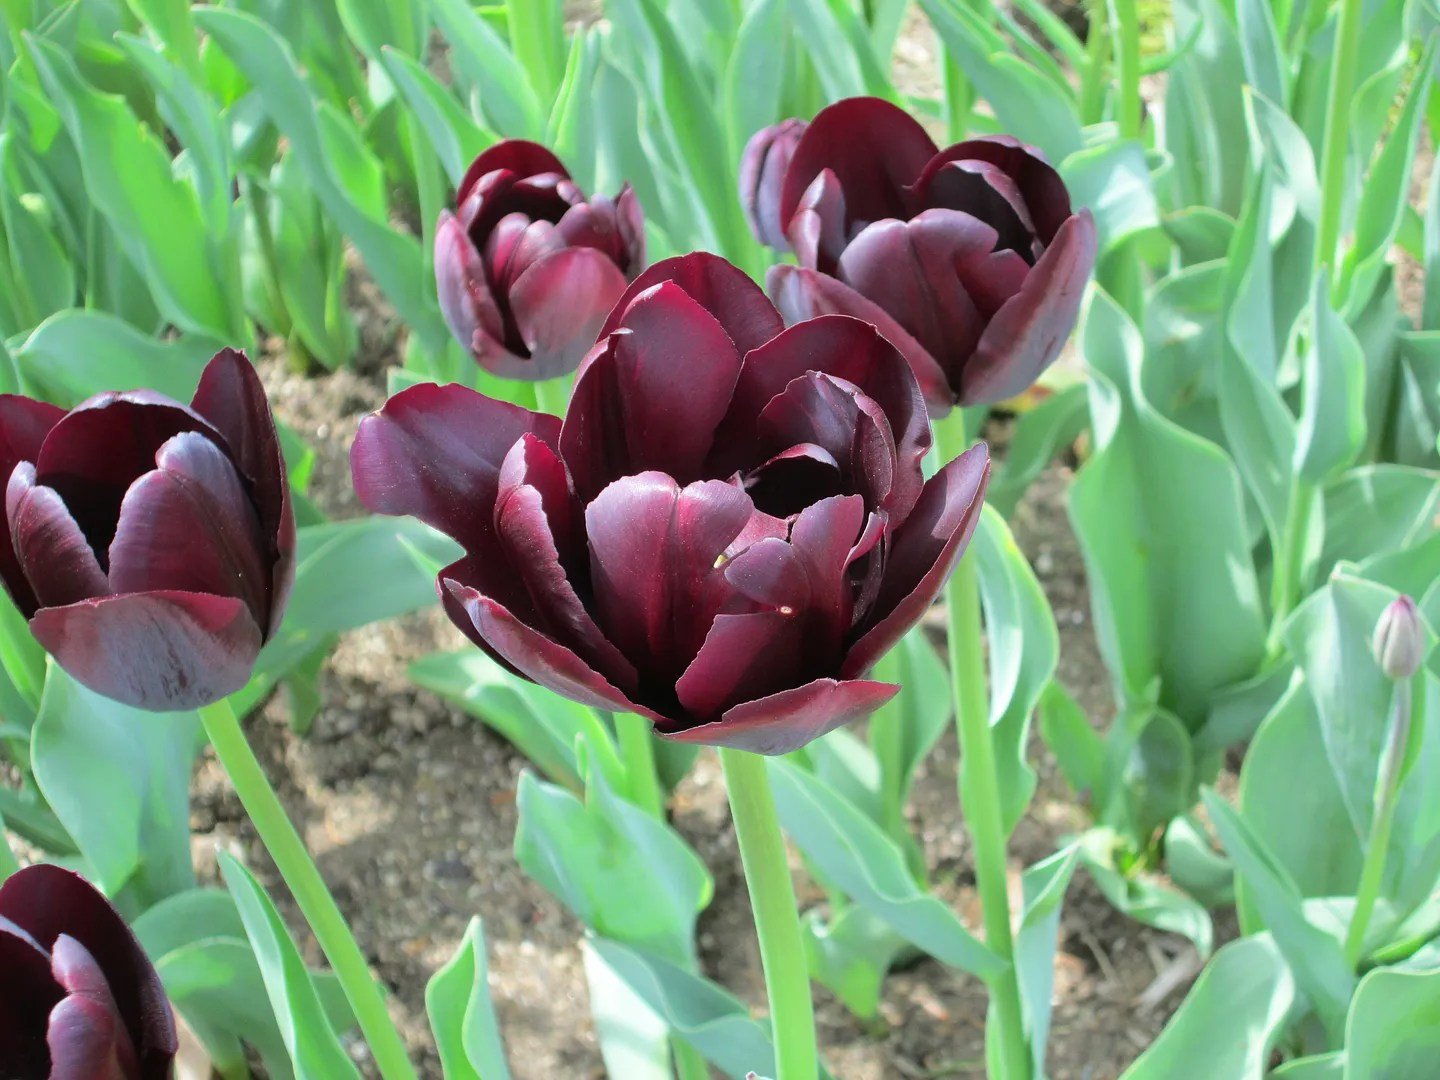 close-up of maroon dark purple tulips